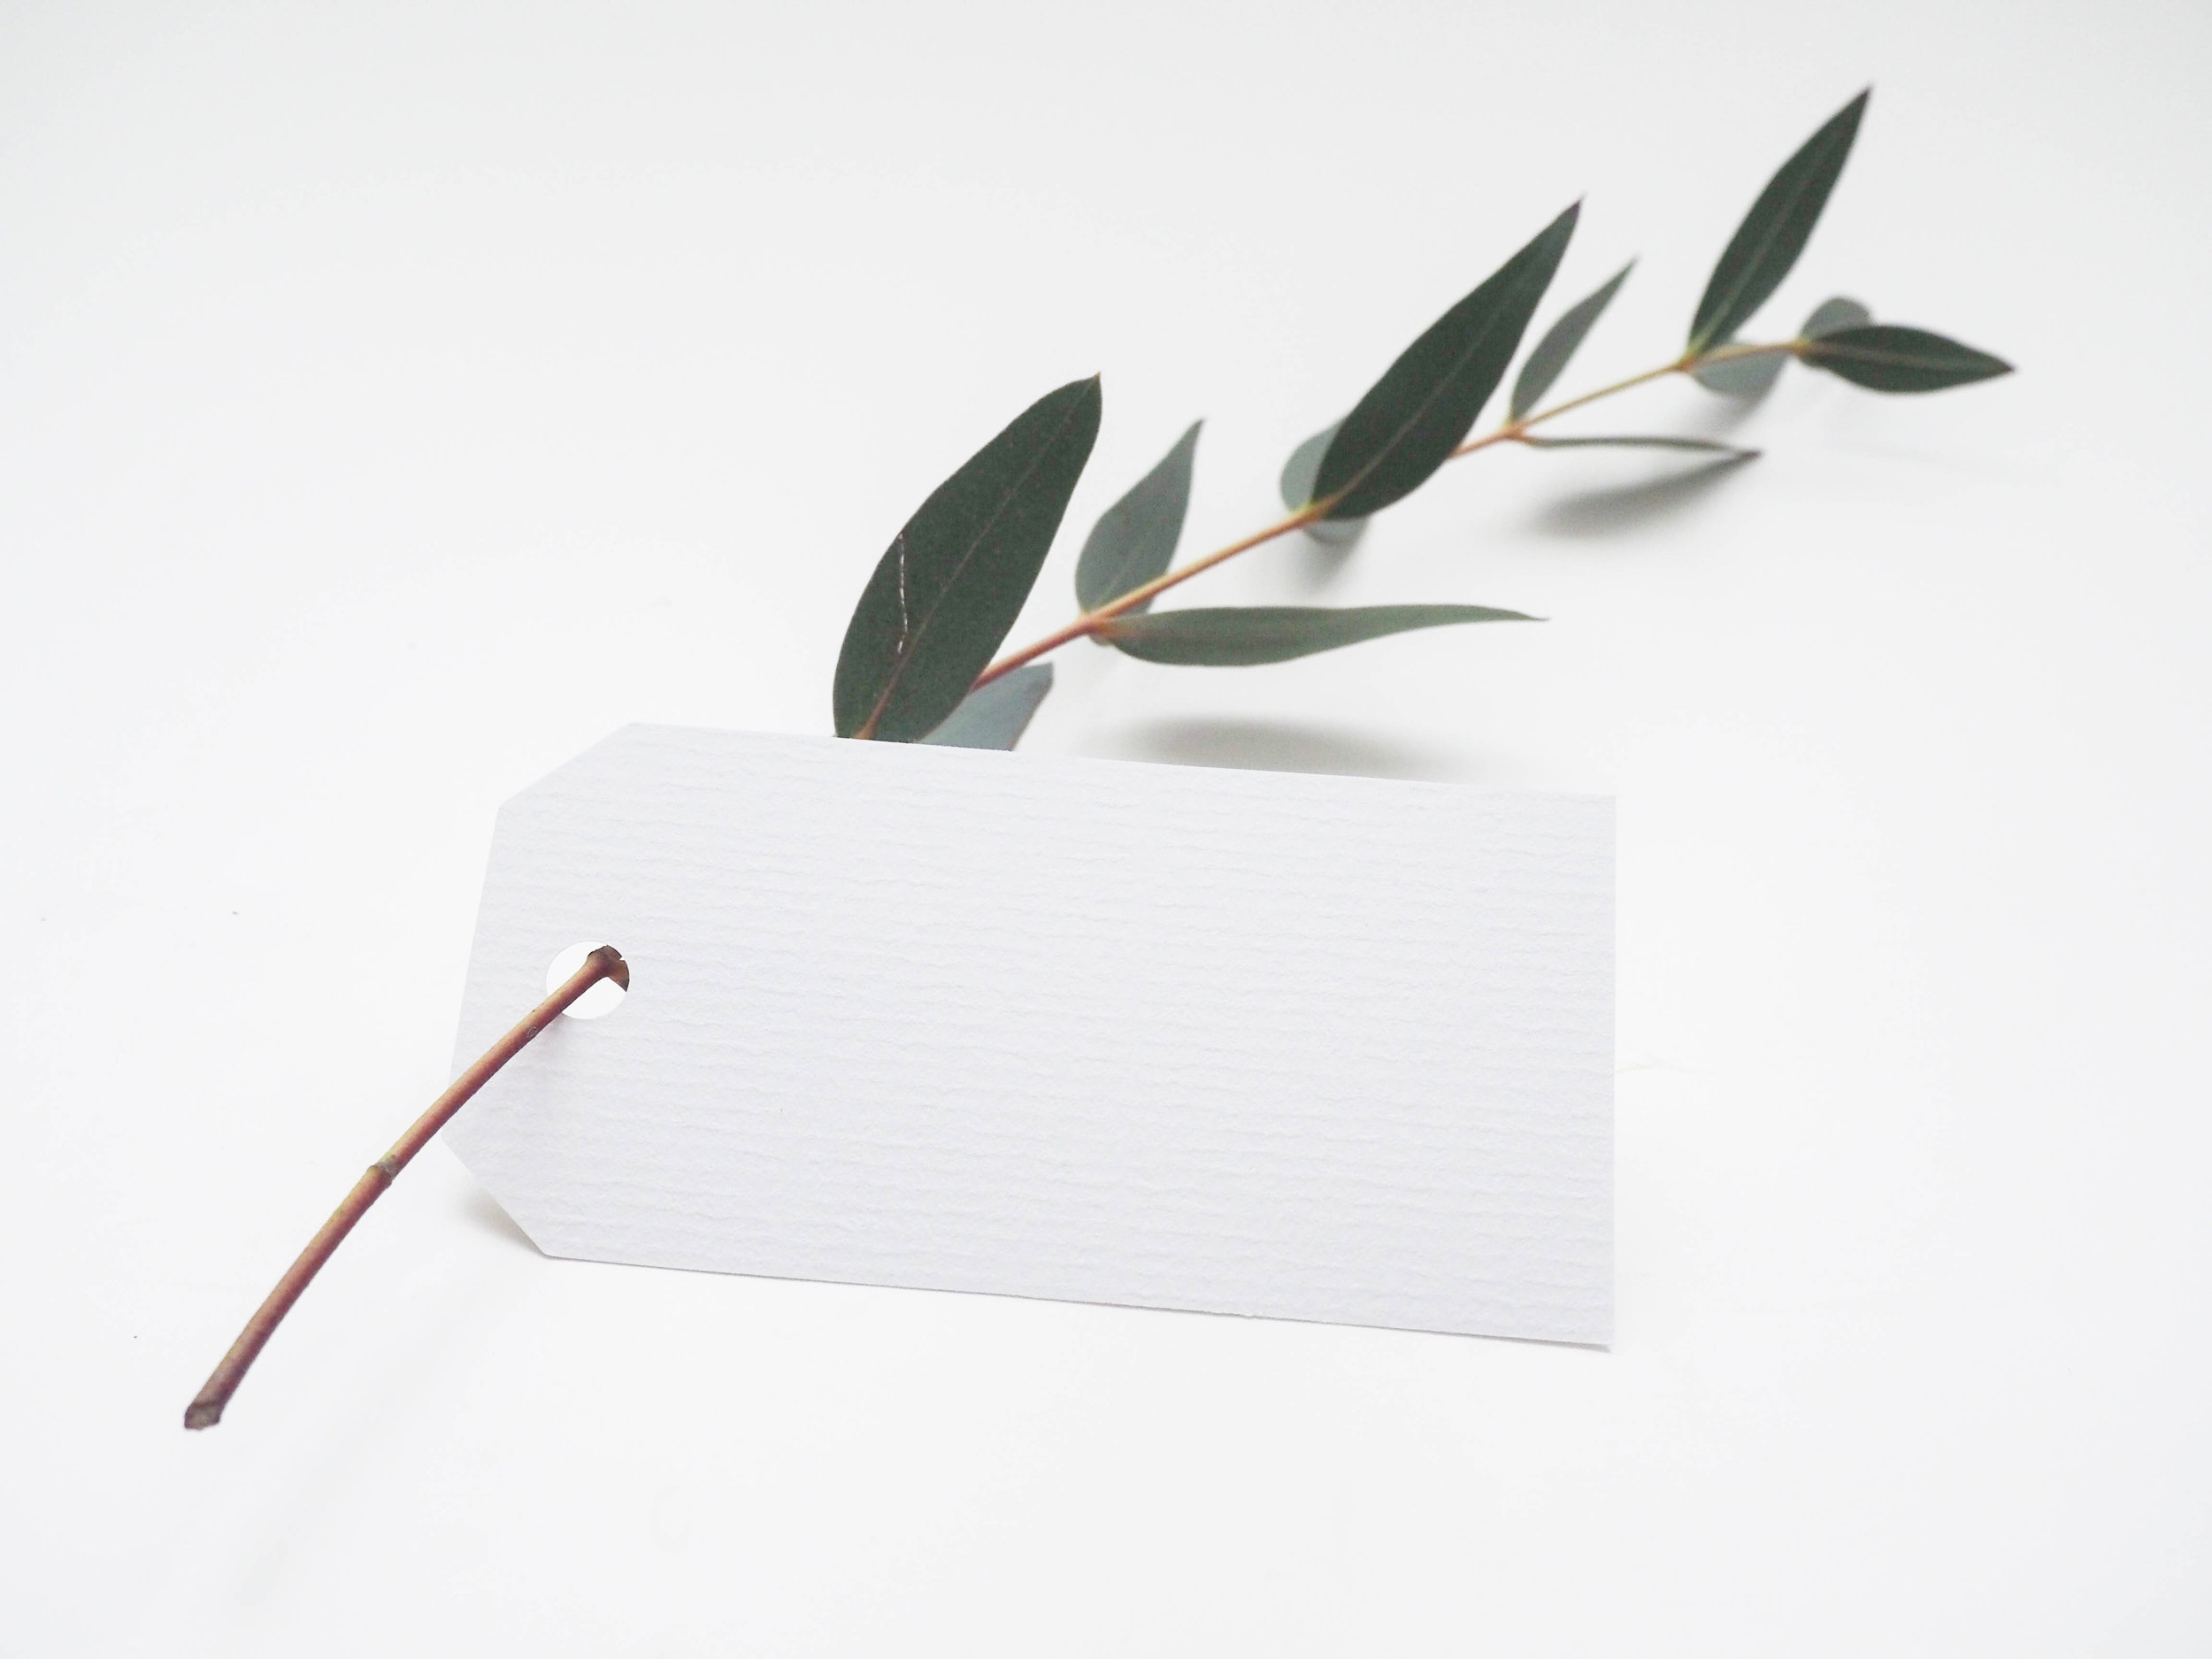 Branch with green leaves on a clean white background